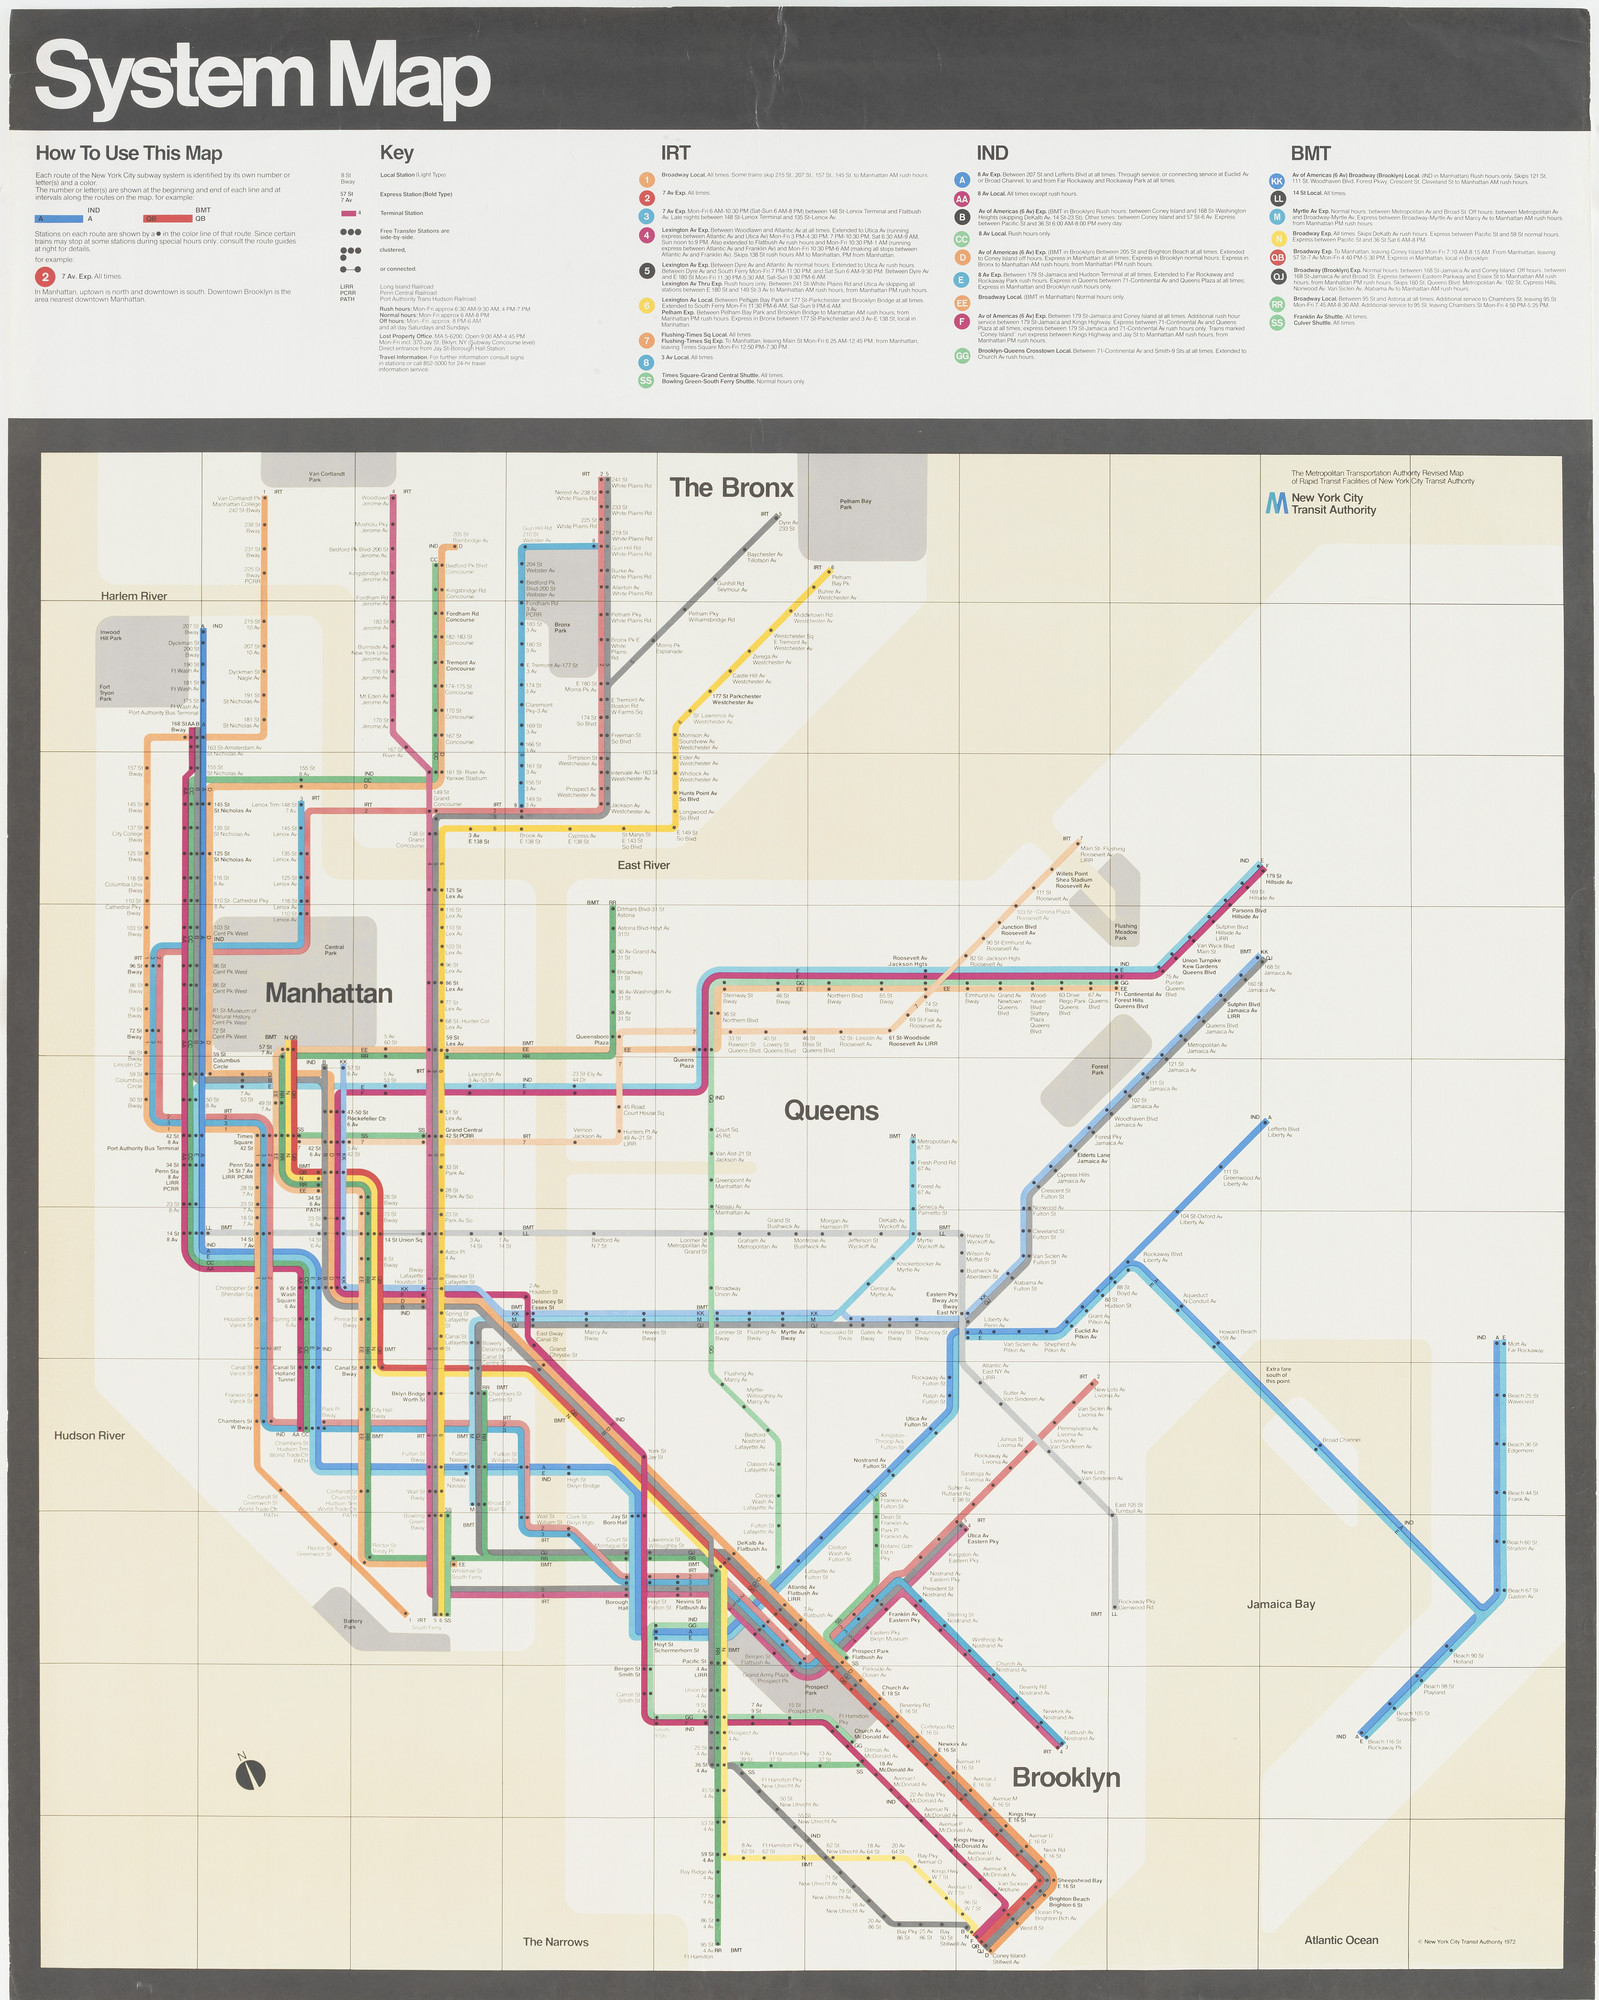 Massimo Vignelli, Joan Charysyn, Bob Noorda, Unimark International Corporation, New York. New York Subway Map. 1970-1972